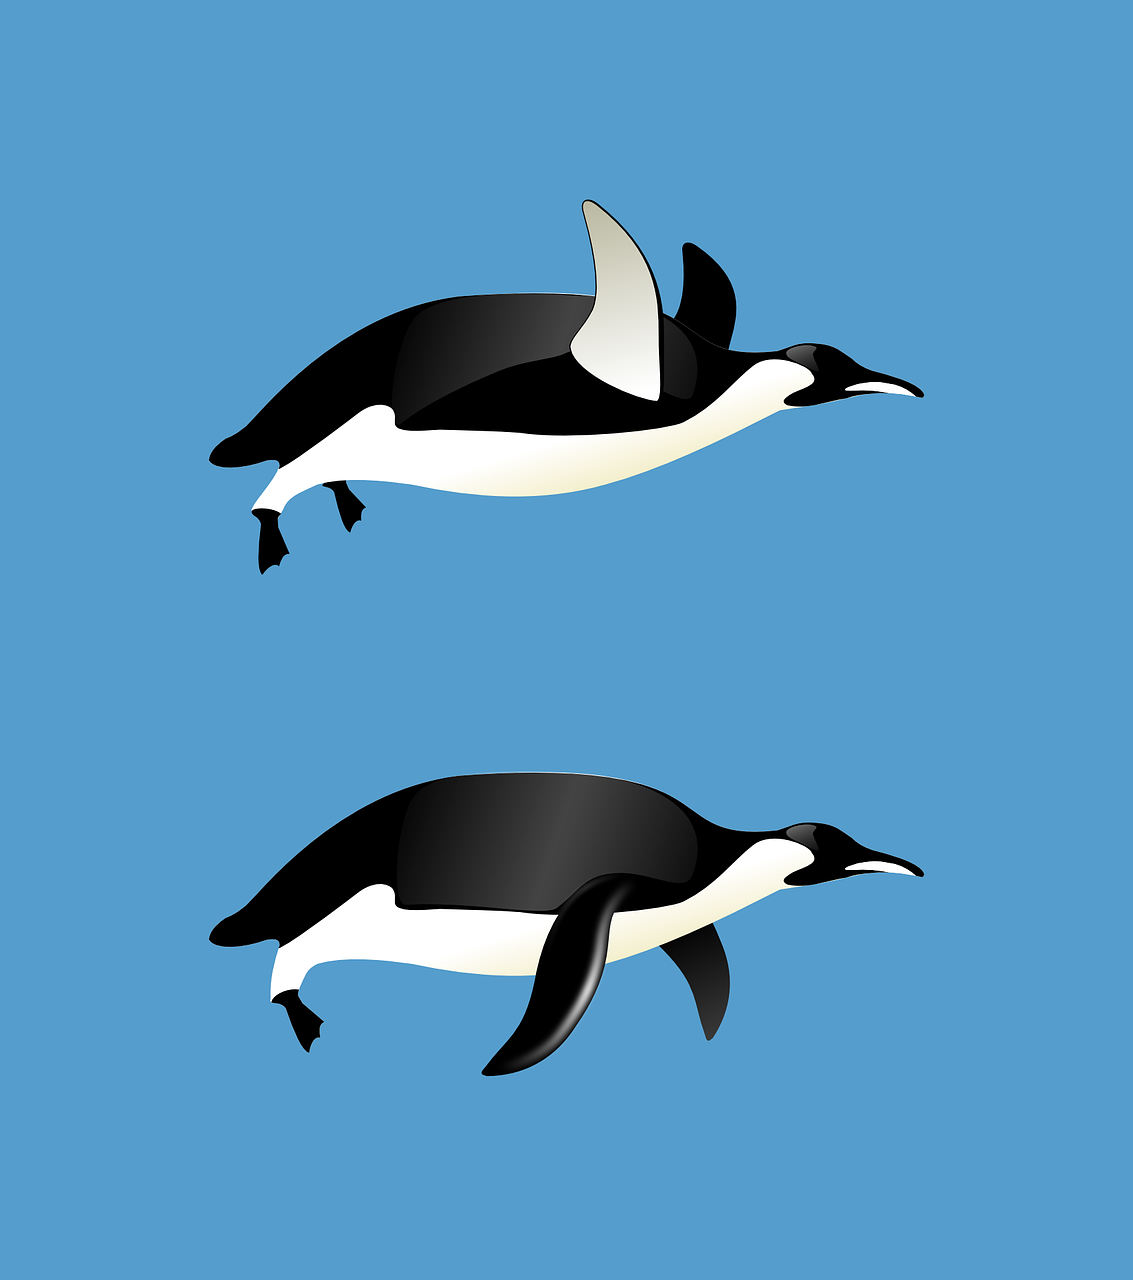 penguins flying animal free photo